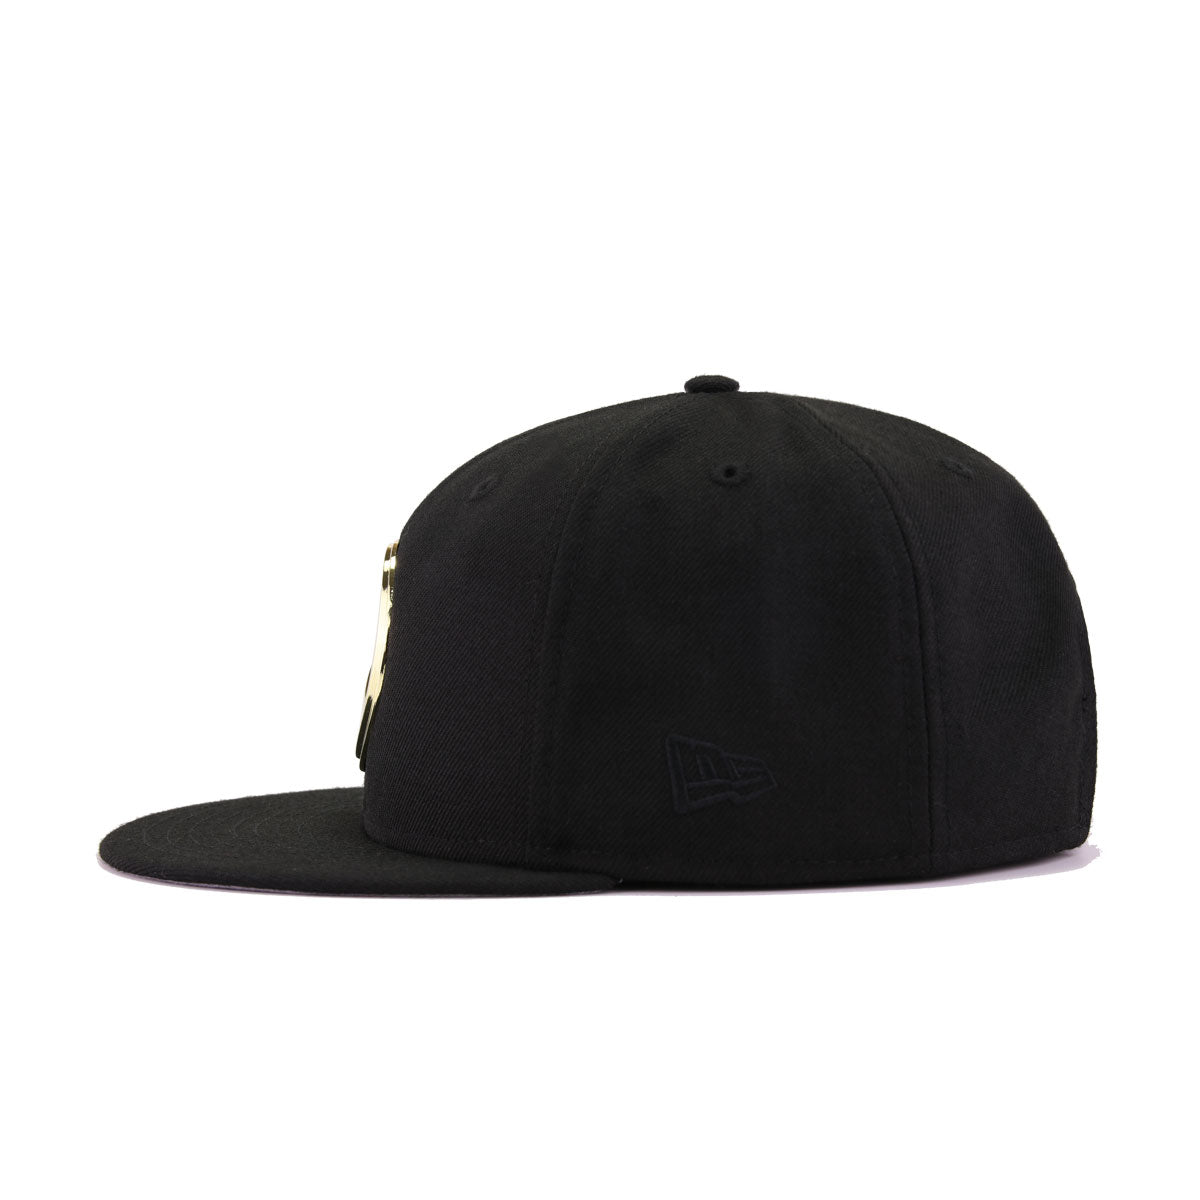 Golden State Warriors Black Gold Metal Badge New Era 9Fifty Snapback